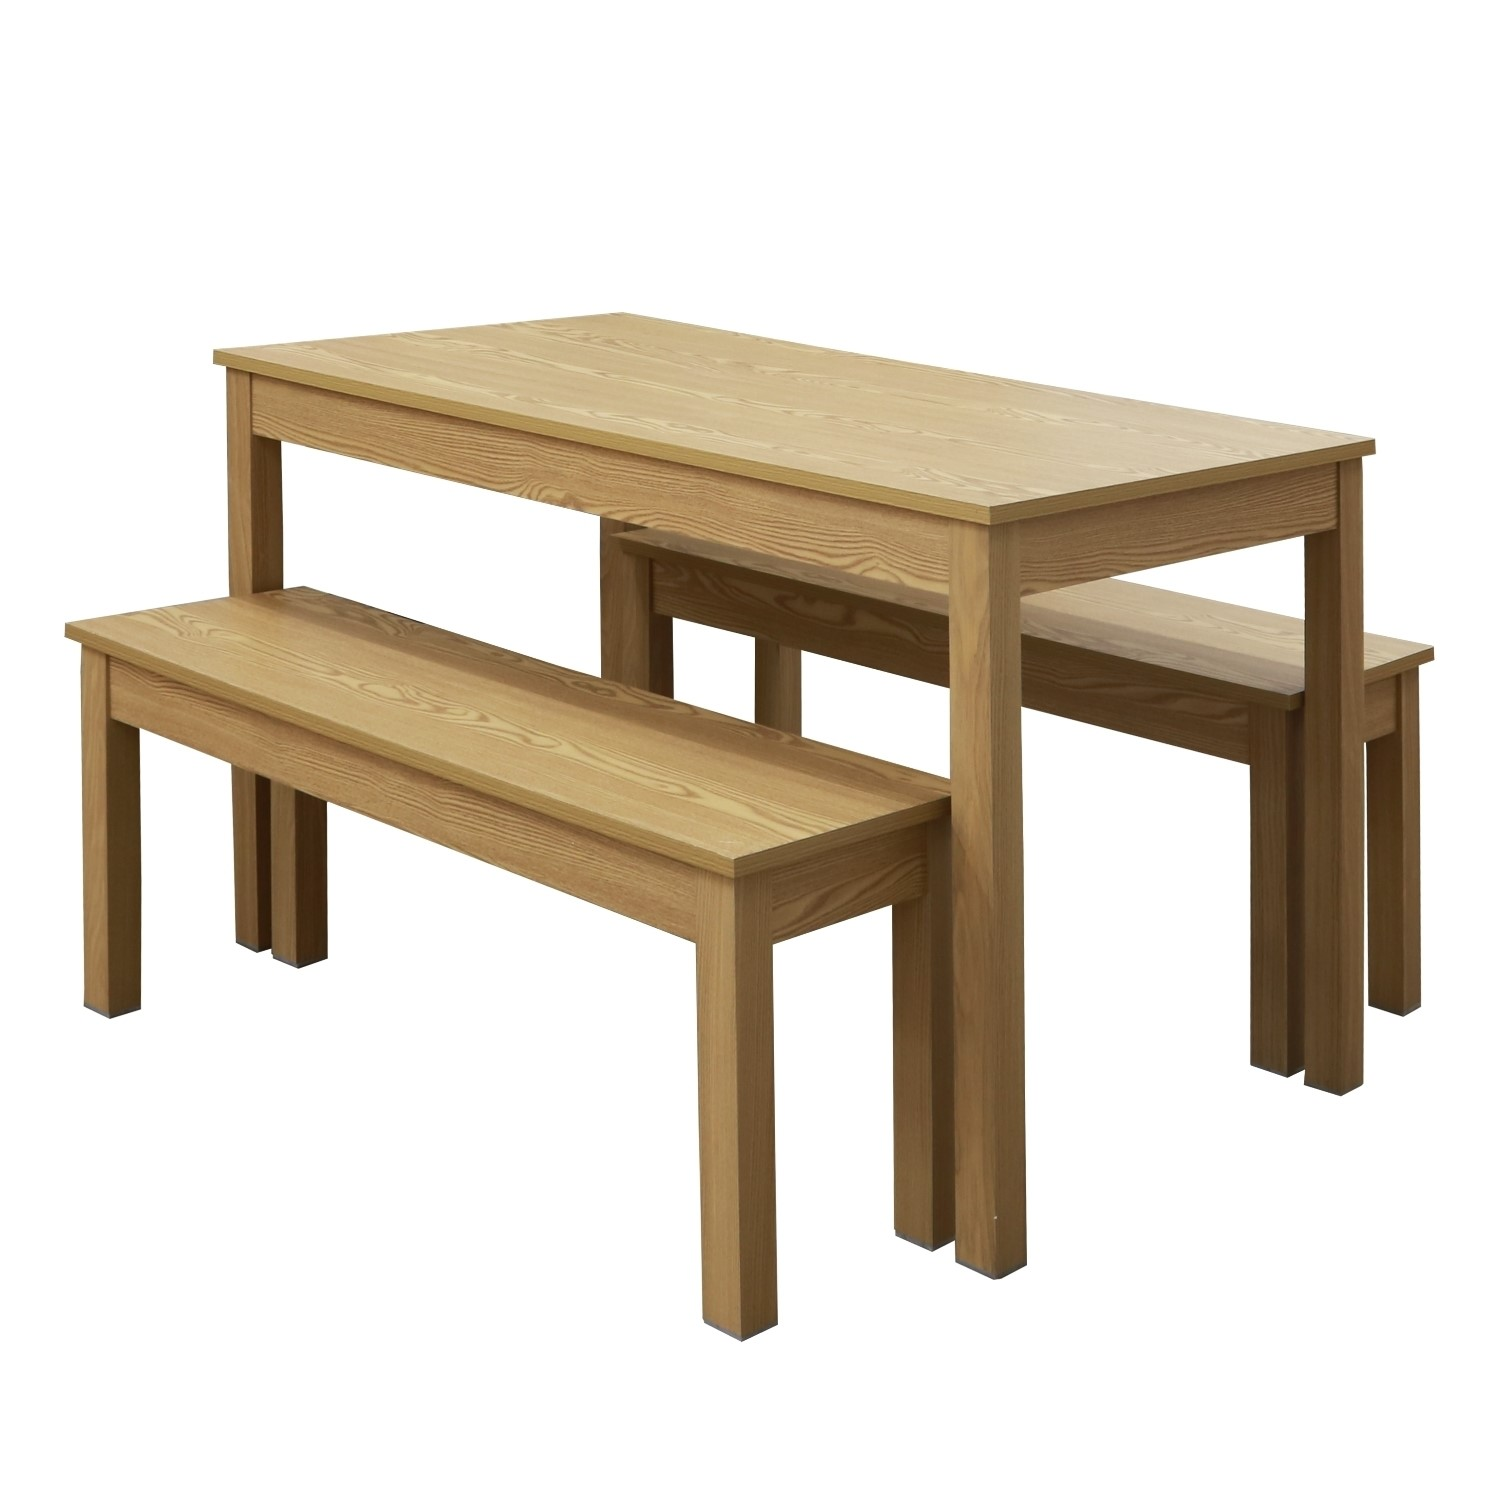 Superb Lpd Ohio Oak Dining Table And Bench Set Gmtry Best Dining Table And Chair Ideas Images Gmtryco